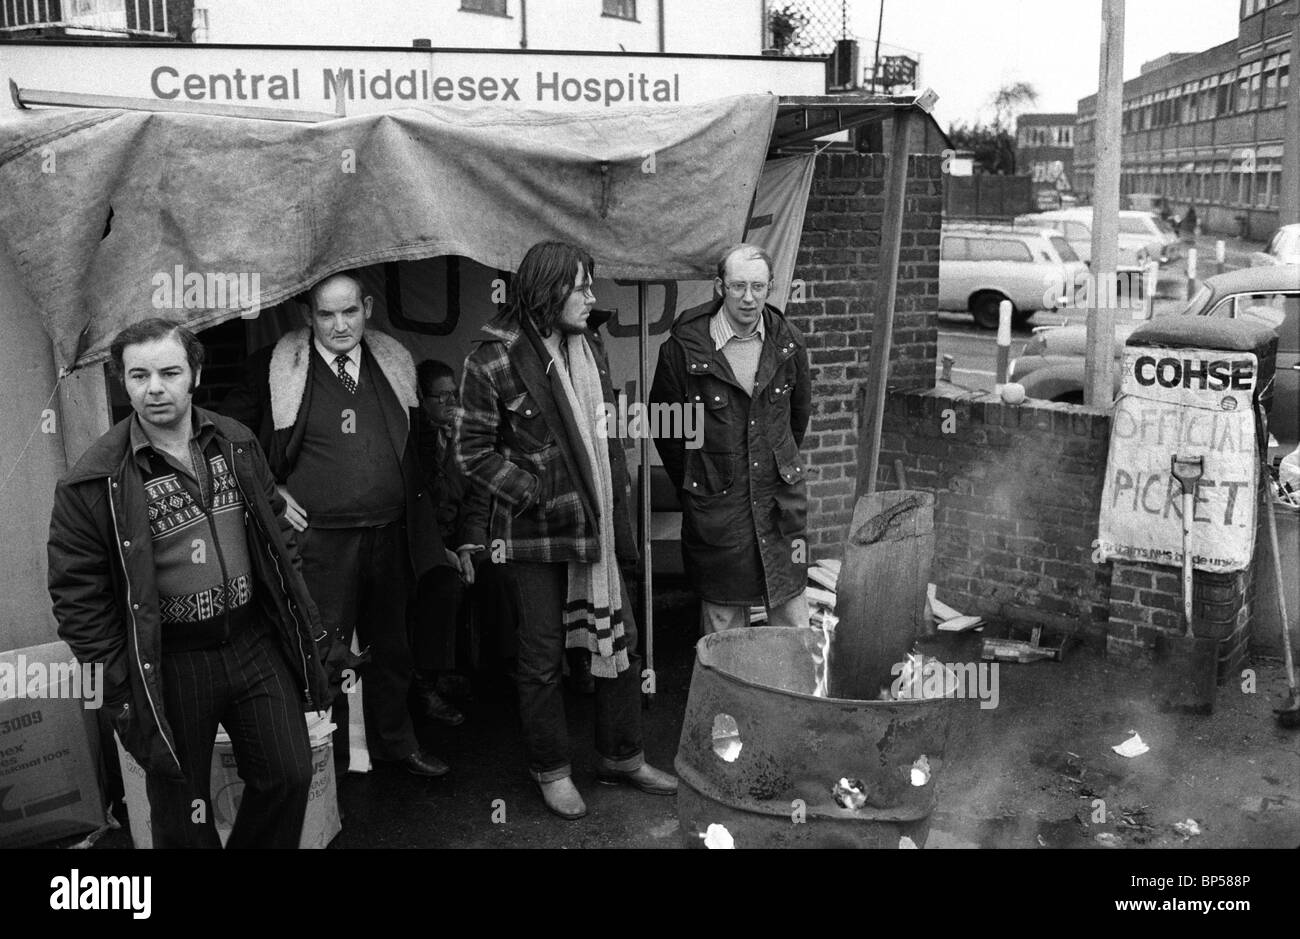 'Winter of Discontent', London. Central Middlesex Hospital. COHSE official Picket Line. London 1978 HOMER - Stock Image